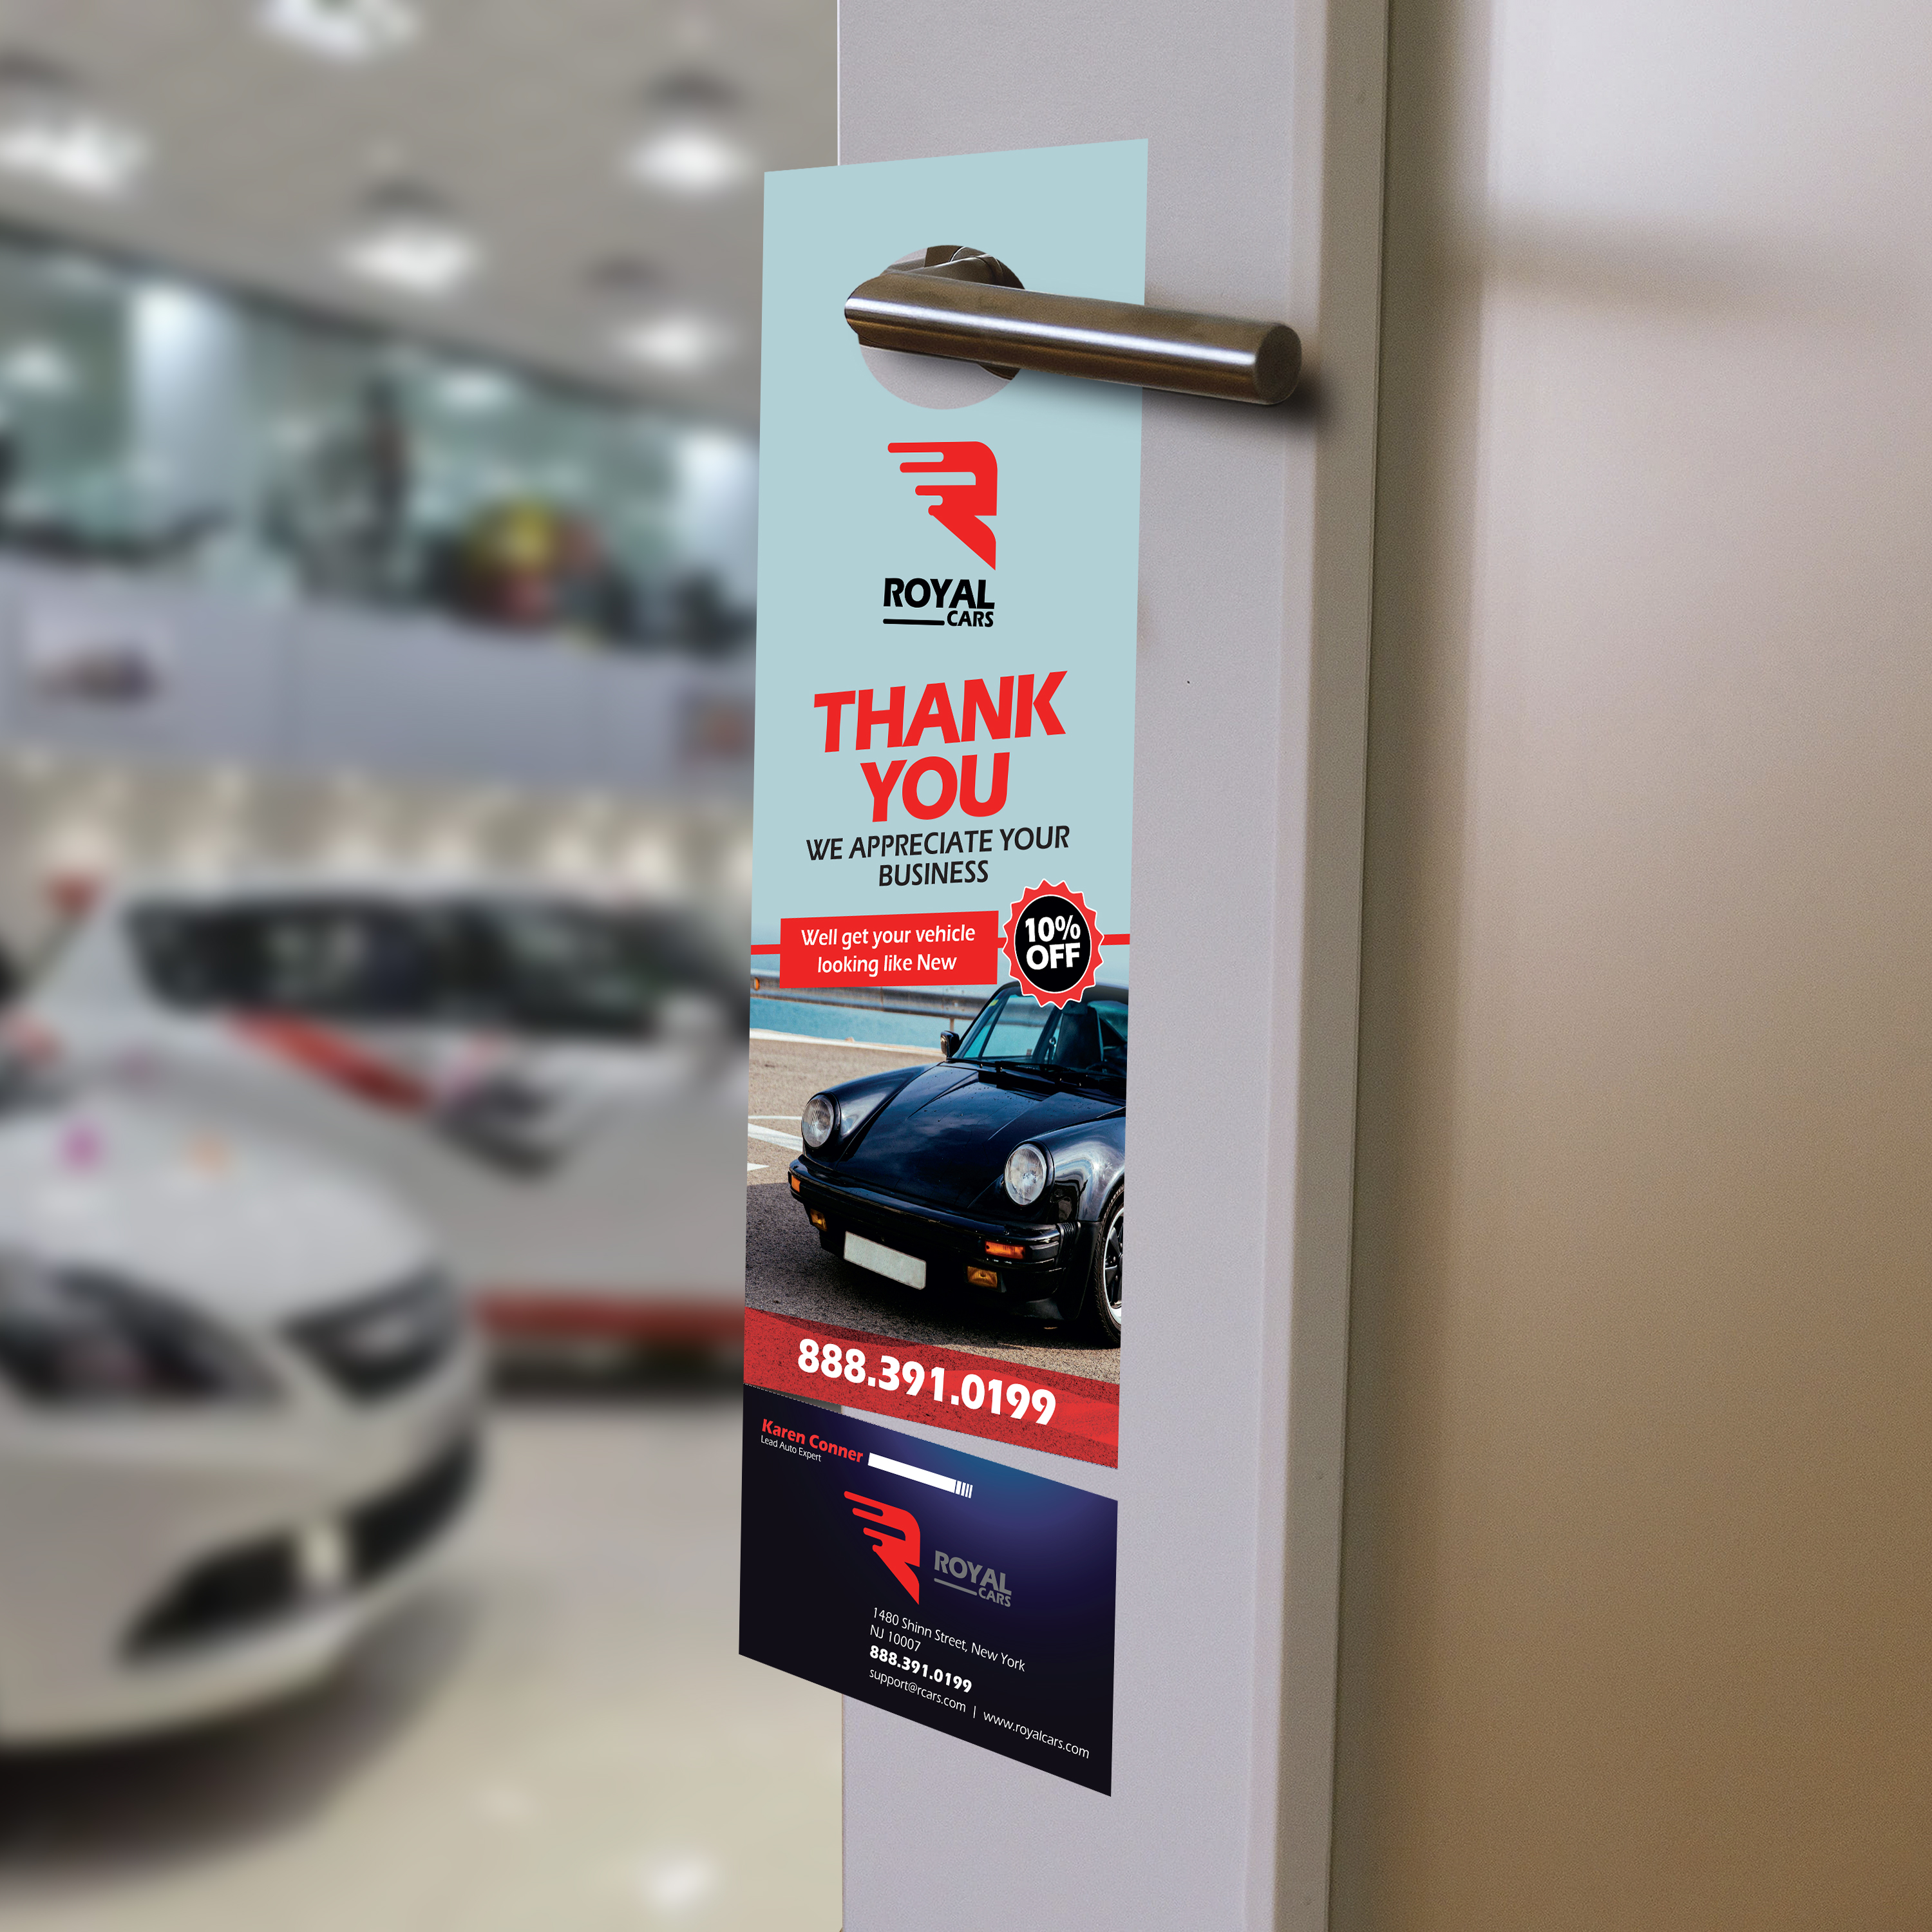 Automotive Door Hangers | Standard, Premium paper stock with UV or Aqueous coating Promote your brand, add coupons, and services | Print Magic